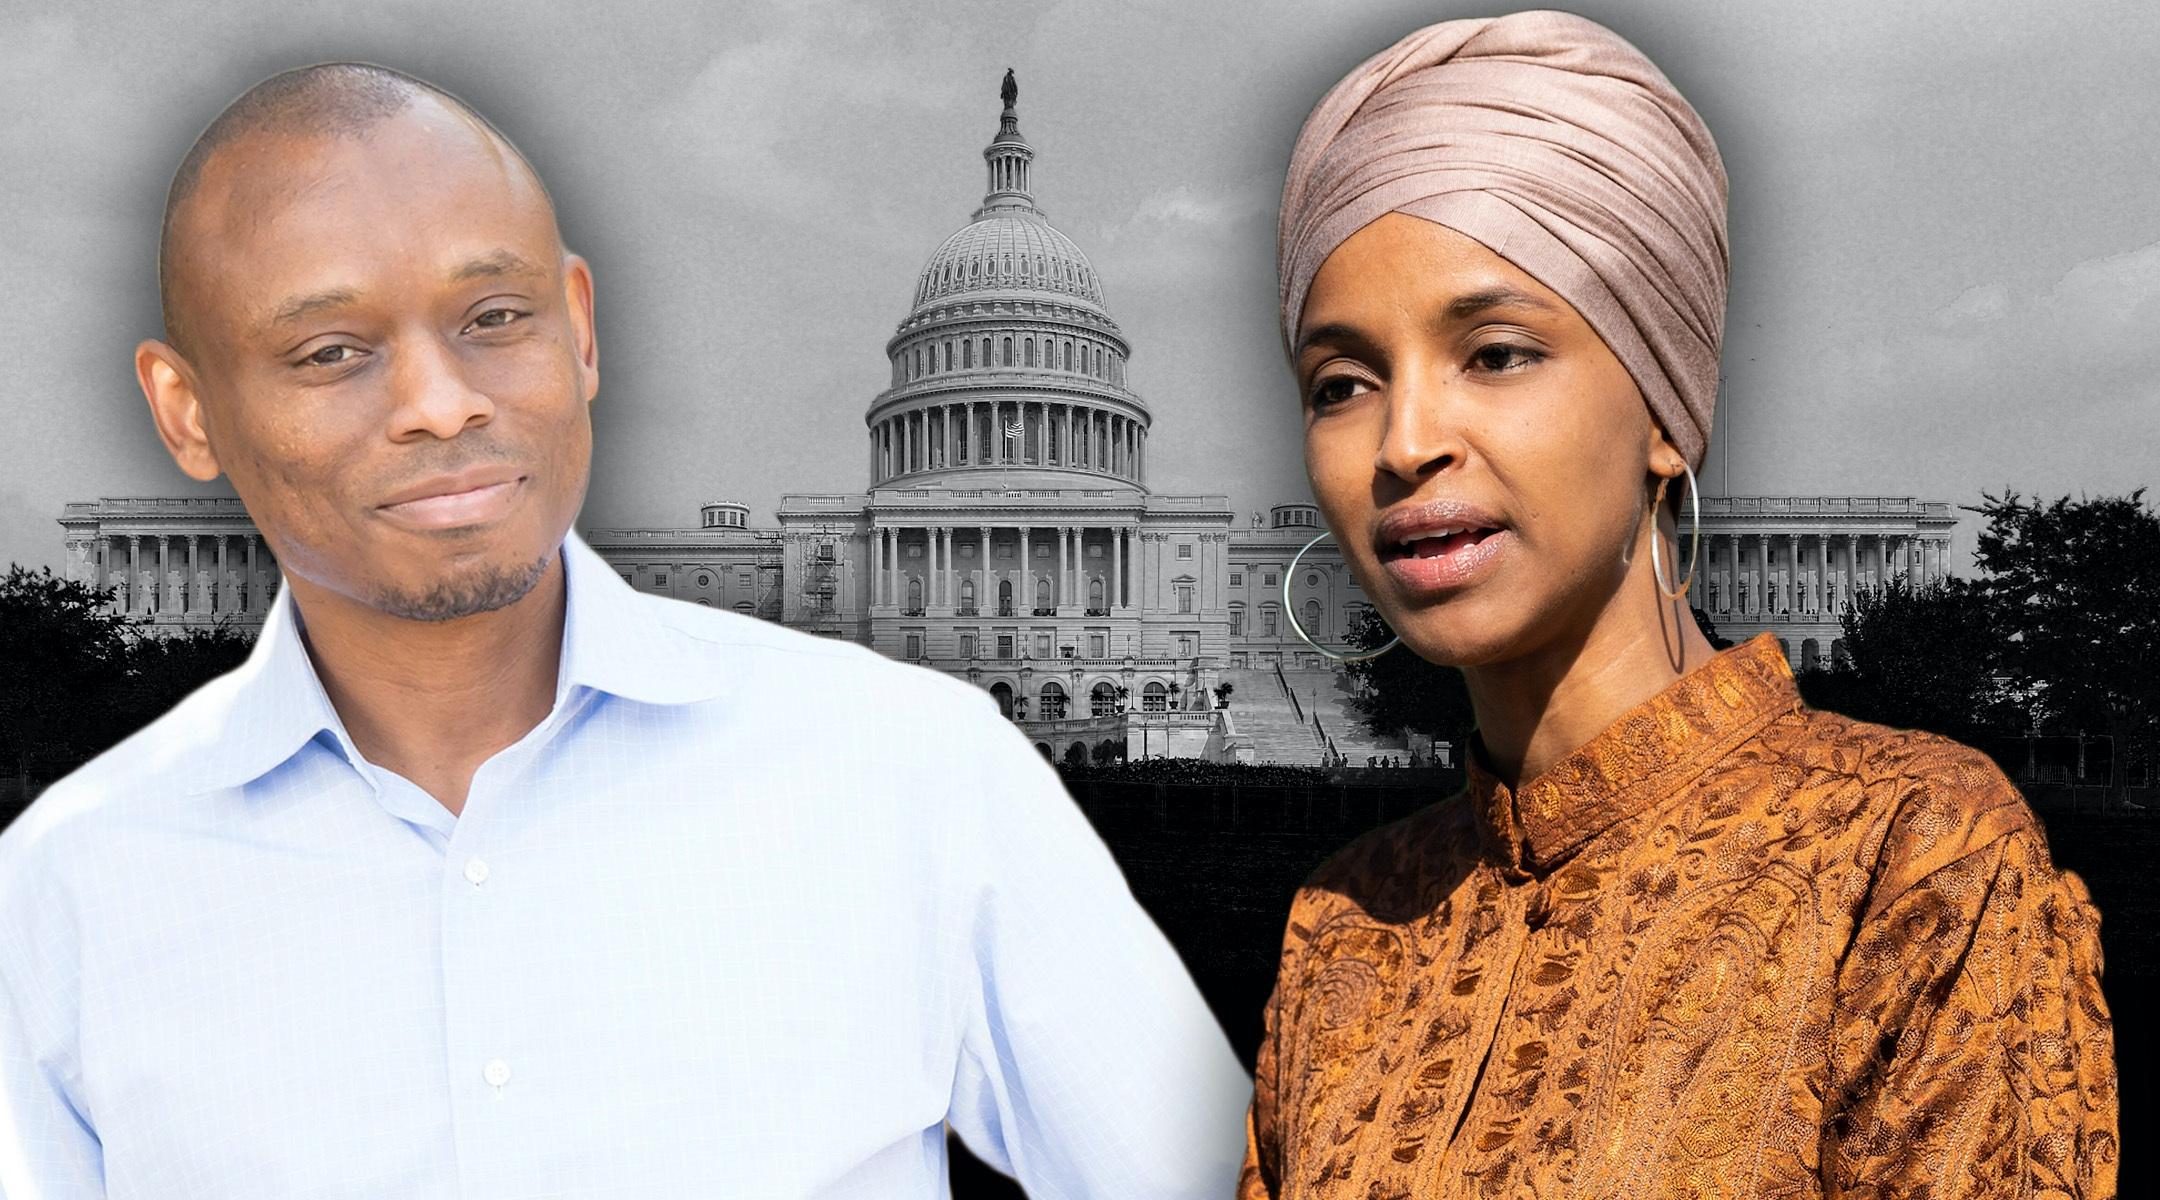 Why Ilhan Omar's primary became the Jewish community's most watched pre-November vote